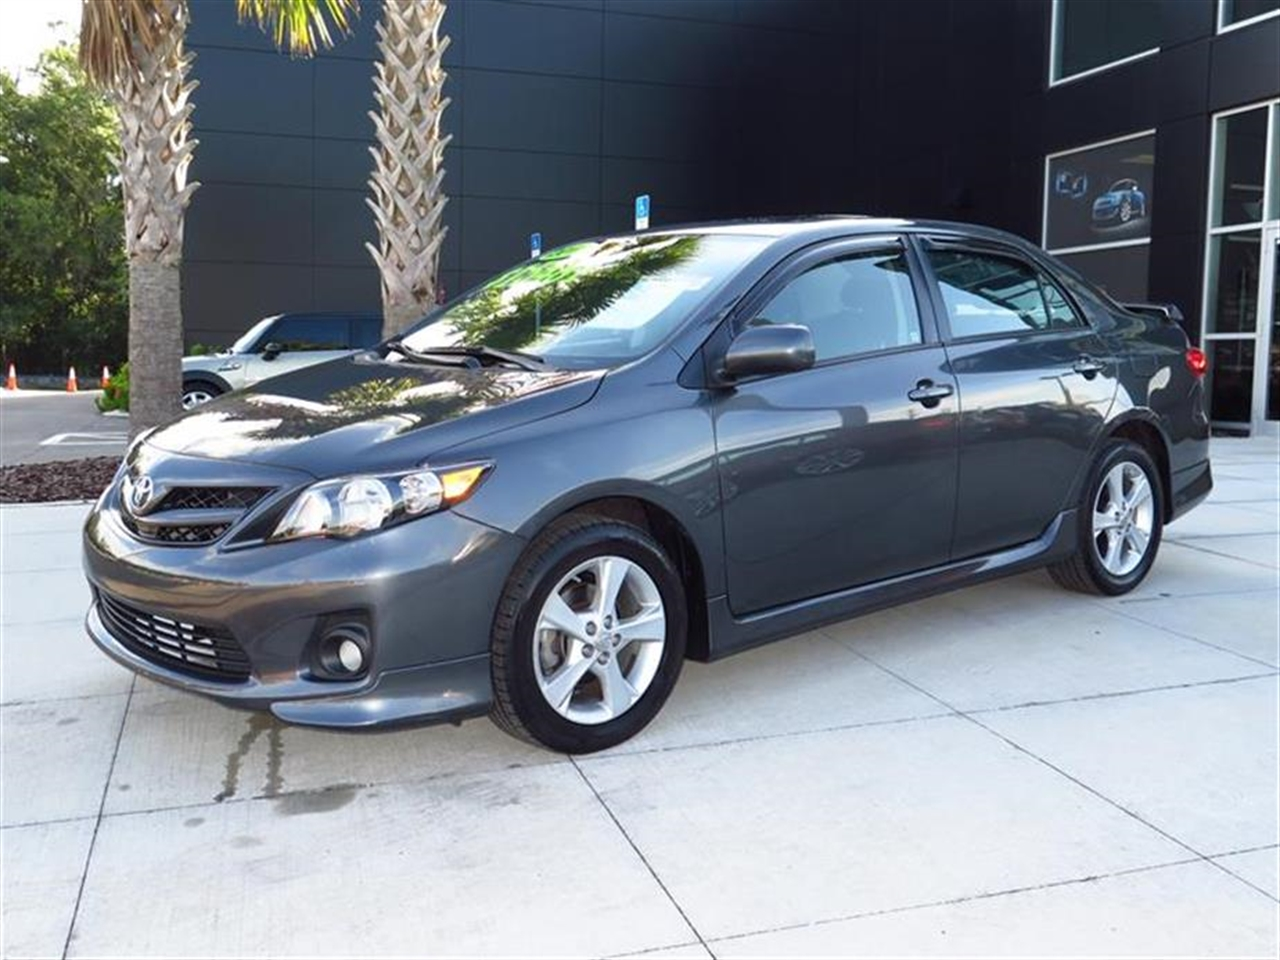 2011 TOYOTA COROLLA 4dr Sdn Auto S 43512 miles 4 cup holders 12V aux pwr outlet 3-spoke sport